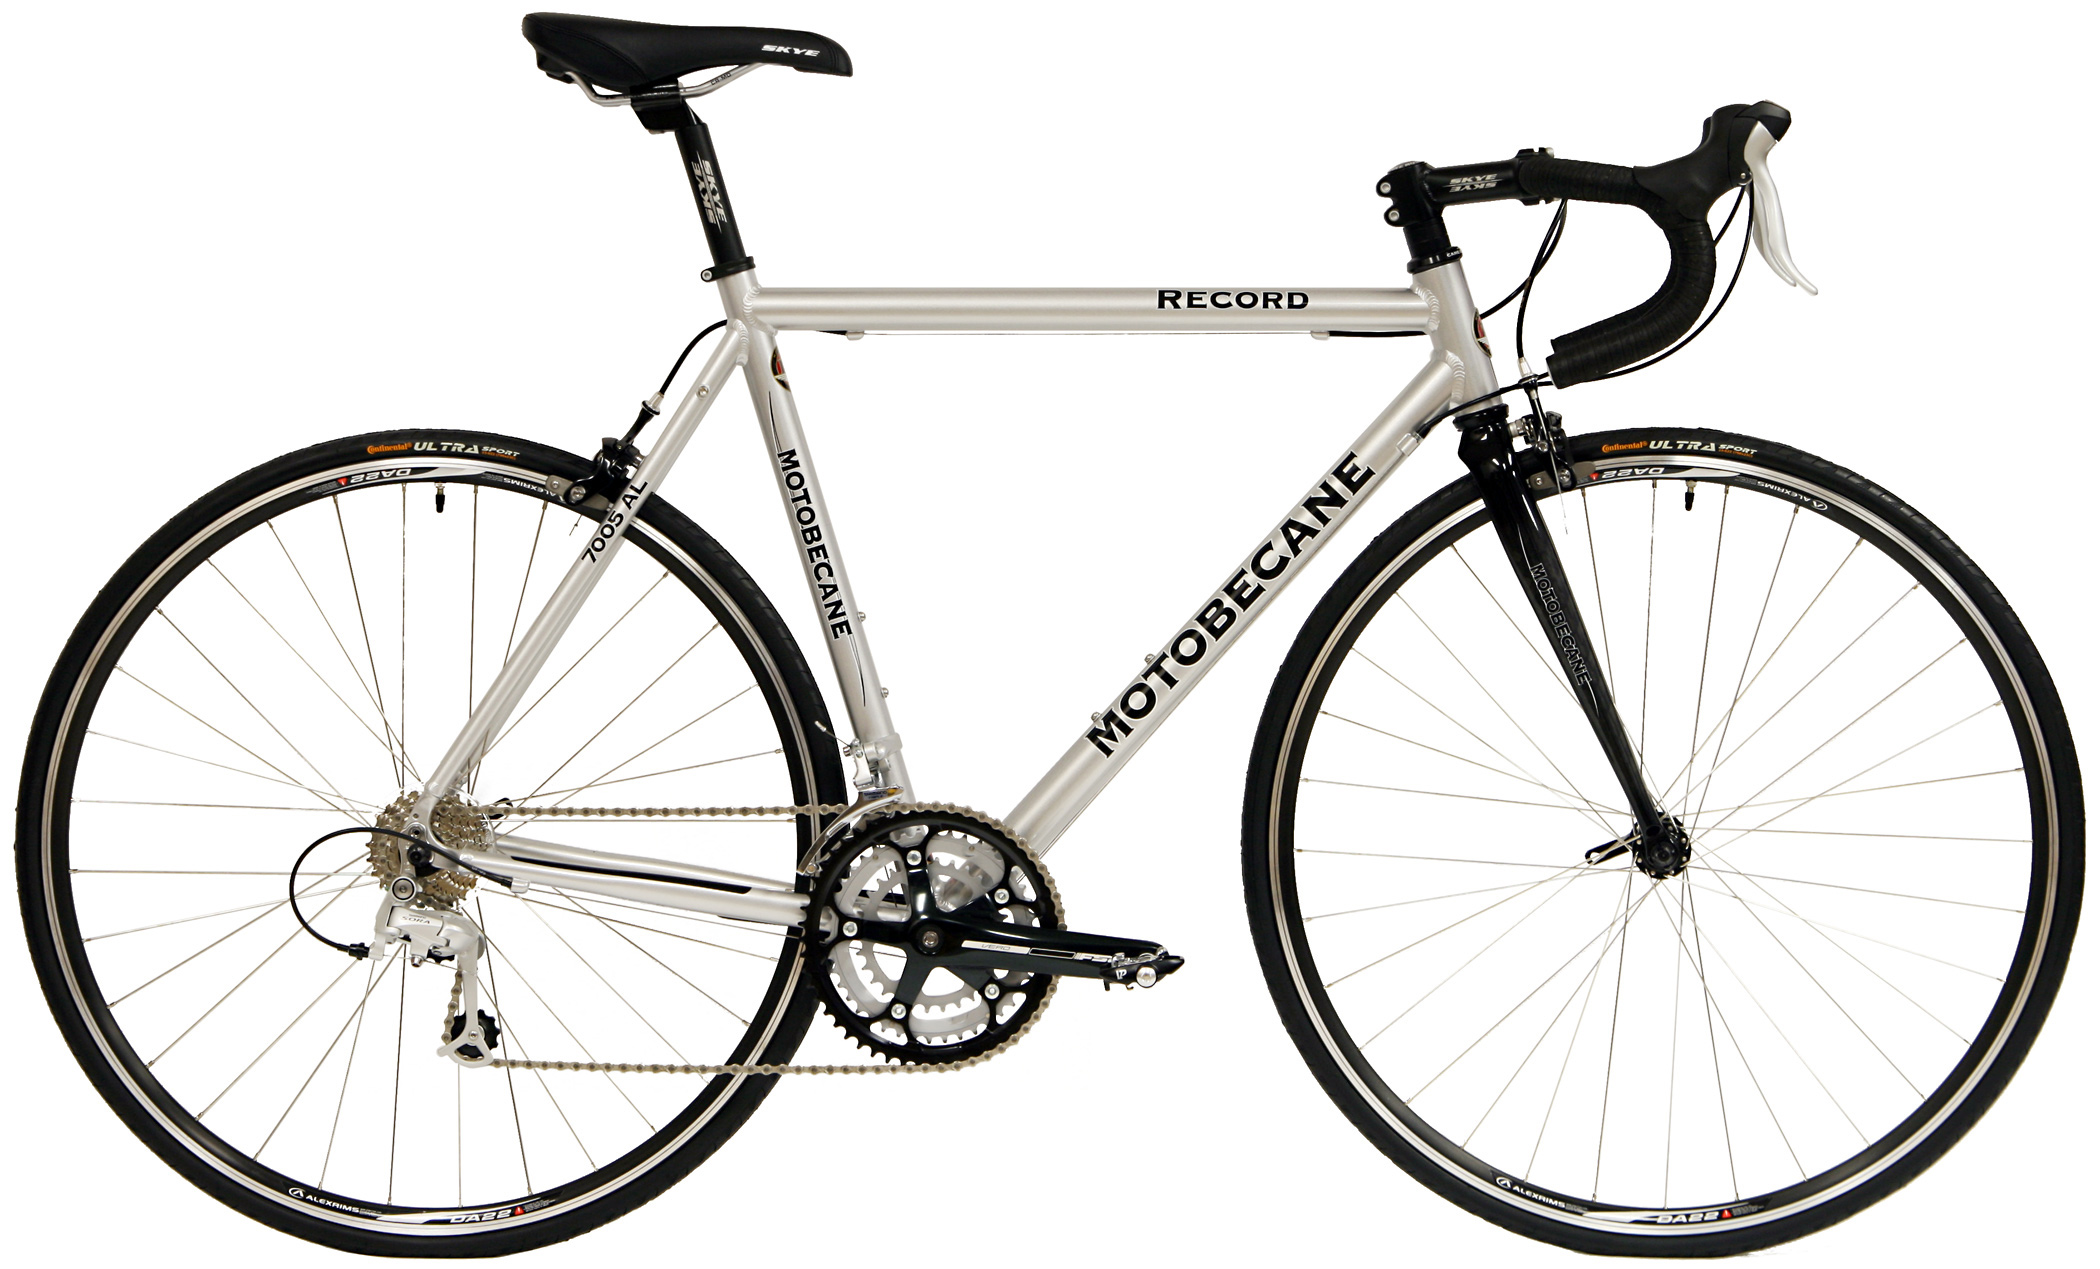 Bikesdirect Motobecane Reviews Motobecane Record